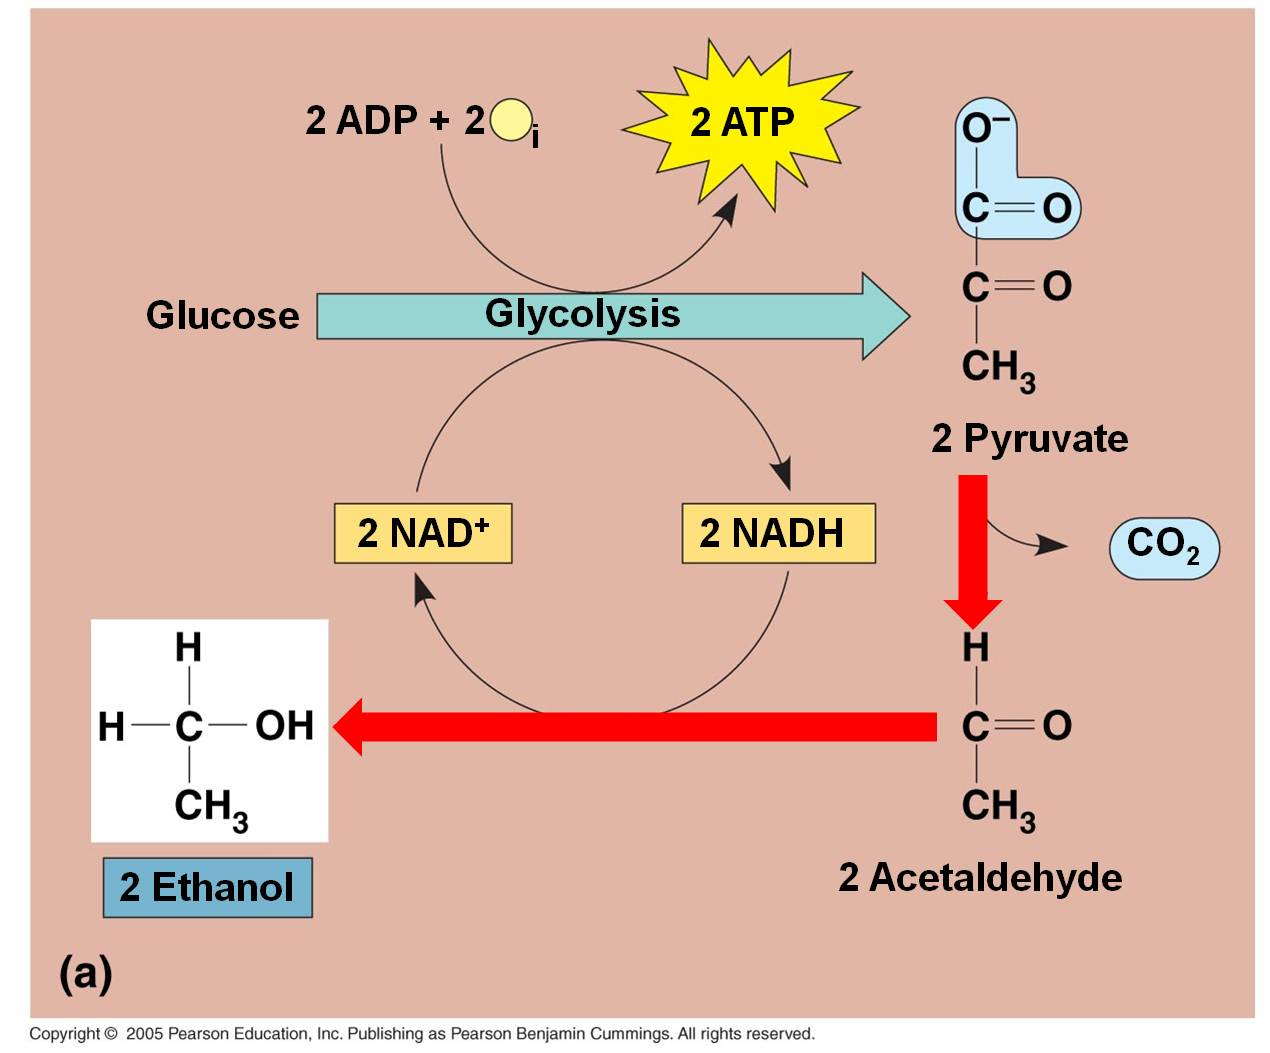 2 in the absence of oxygen some cells and organisms can use glycolysis coupled to fermentation to pr The end-point of glycolysis is the formation of pyruvate (2 molecules of pyruvate per molecule of glucose), which can enter several different metabolic pathways depending on the type of organism and the presence of oxygen.